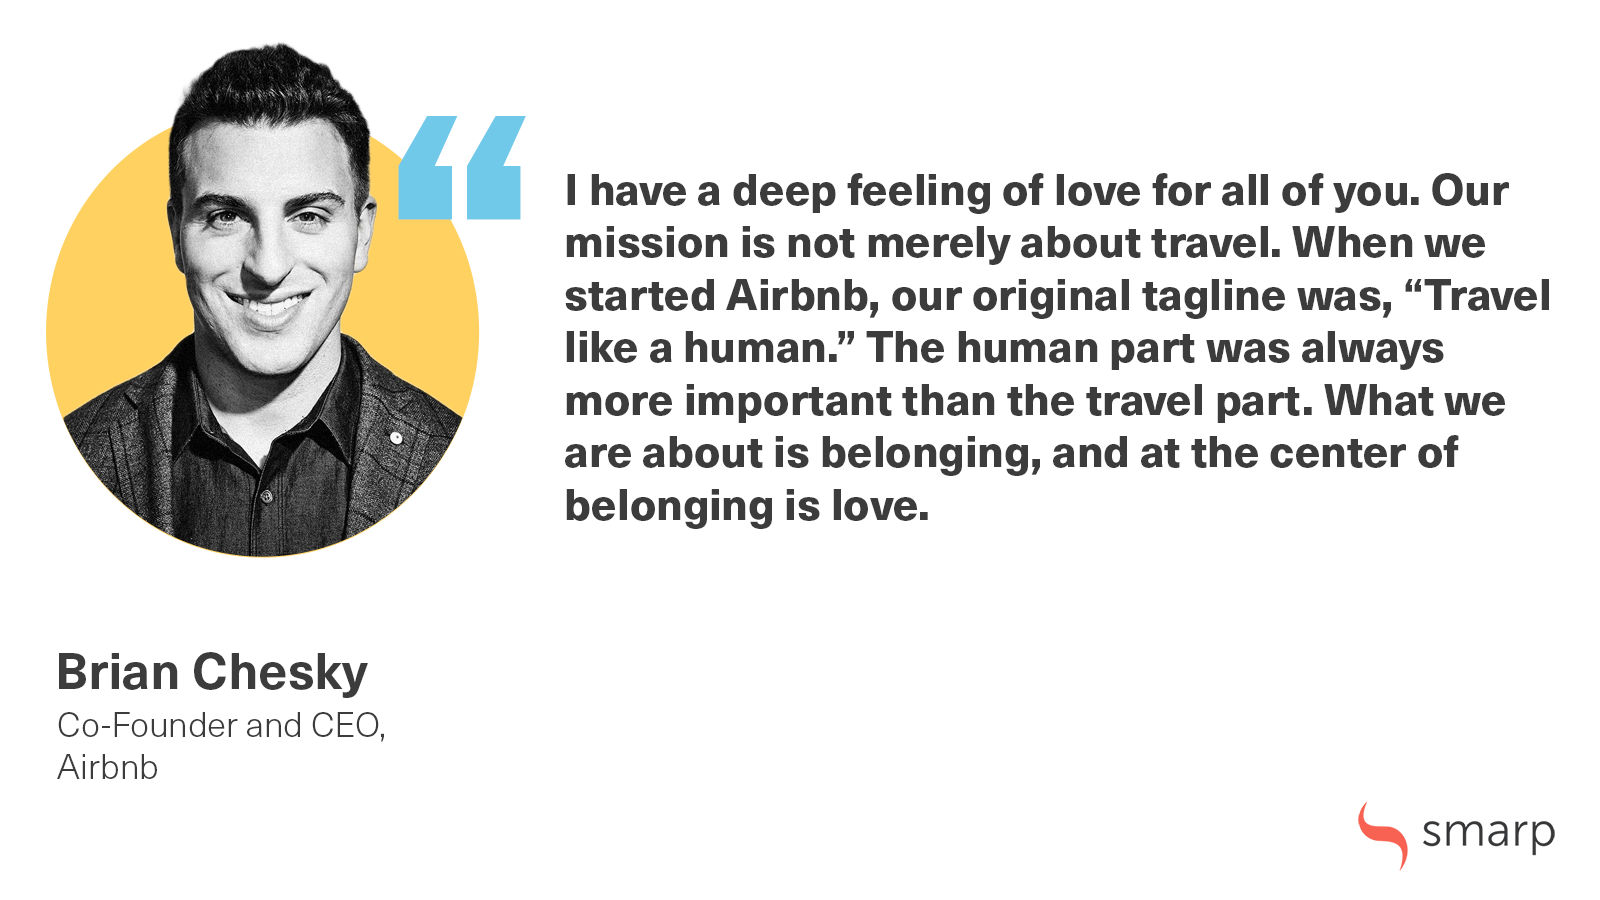 Brian Chesky airbnb smarp quote